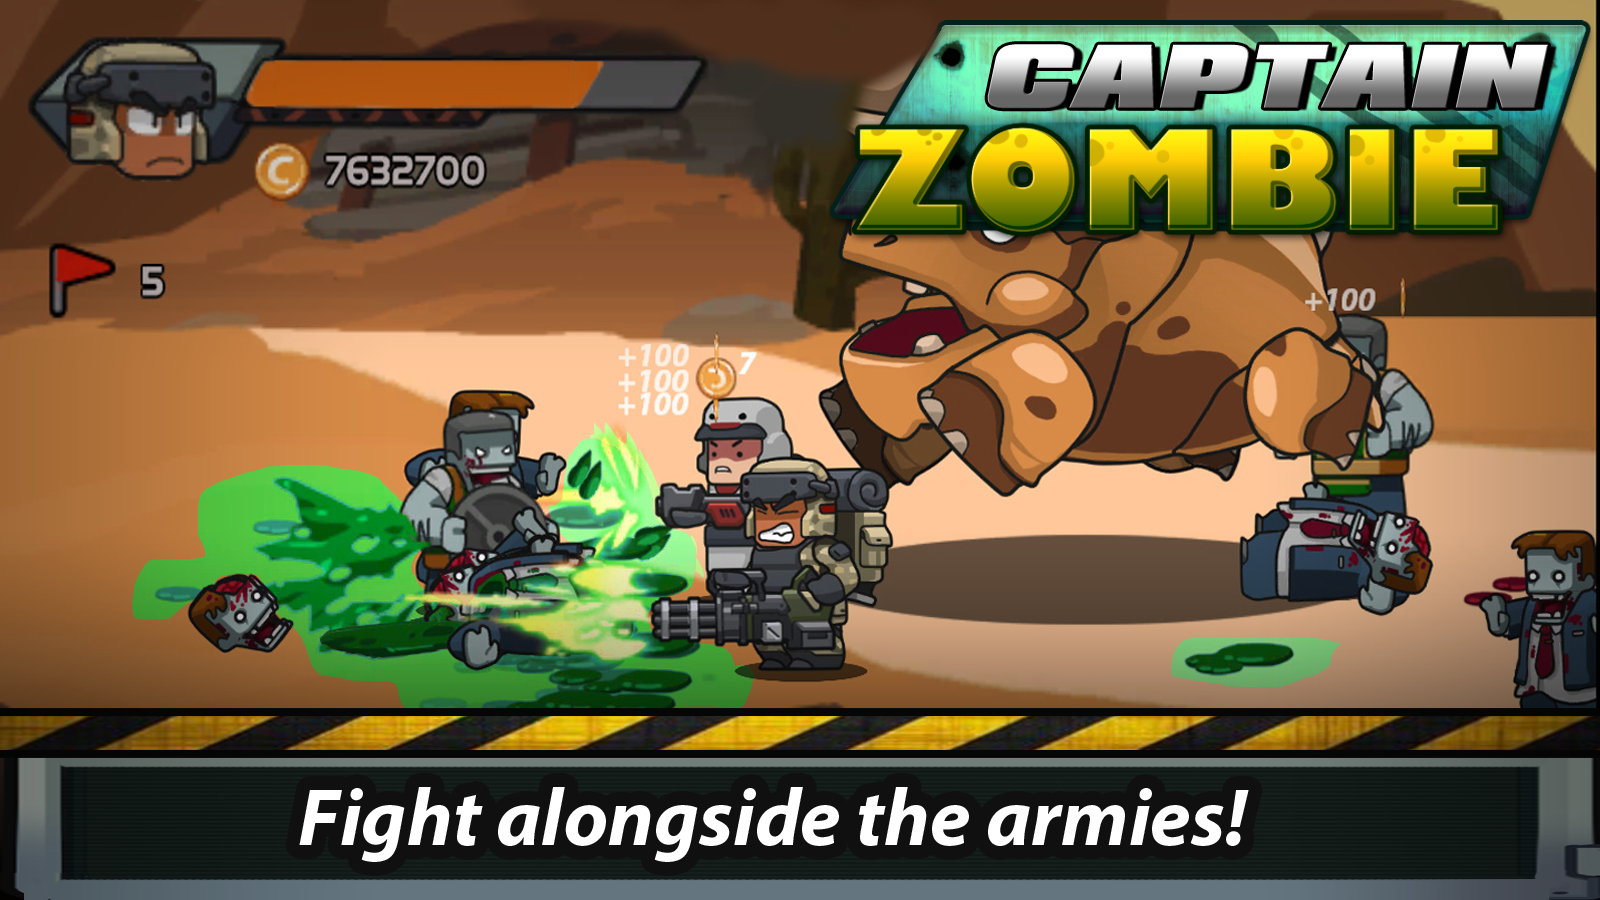 Download Captain Zombie: Avenger (Shooting Game) 1 59 APK